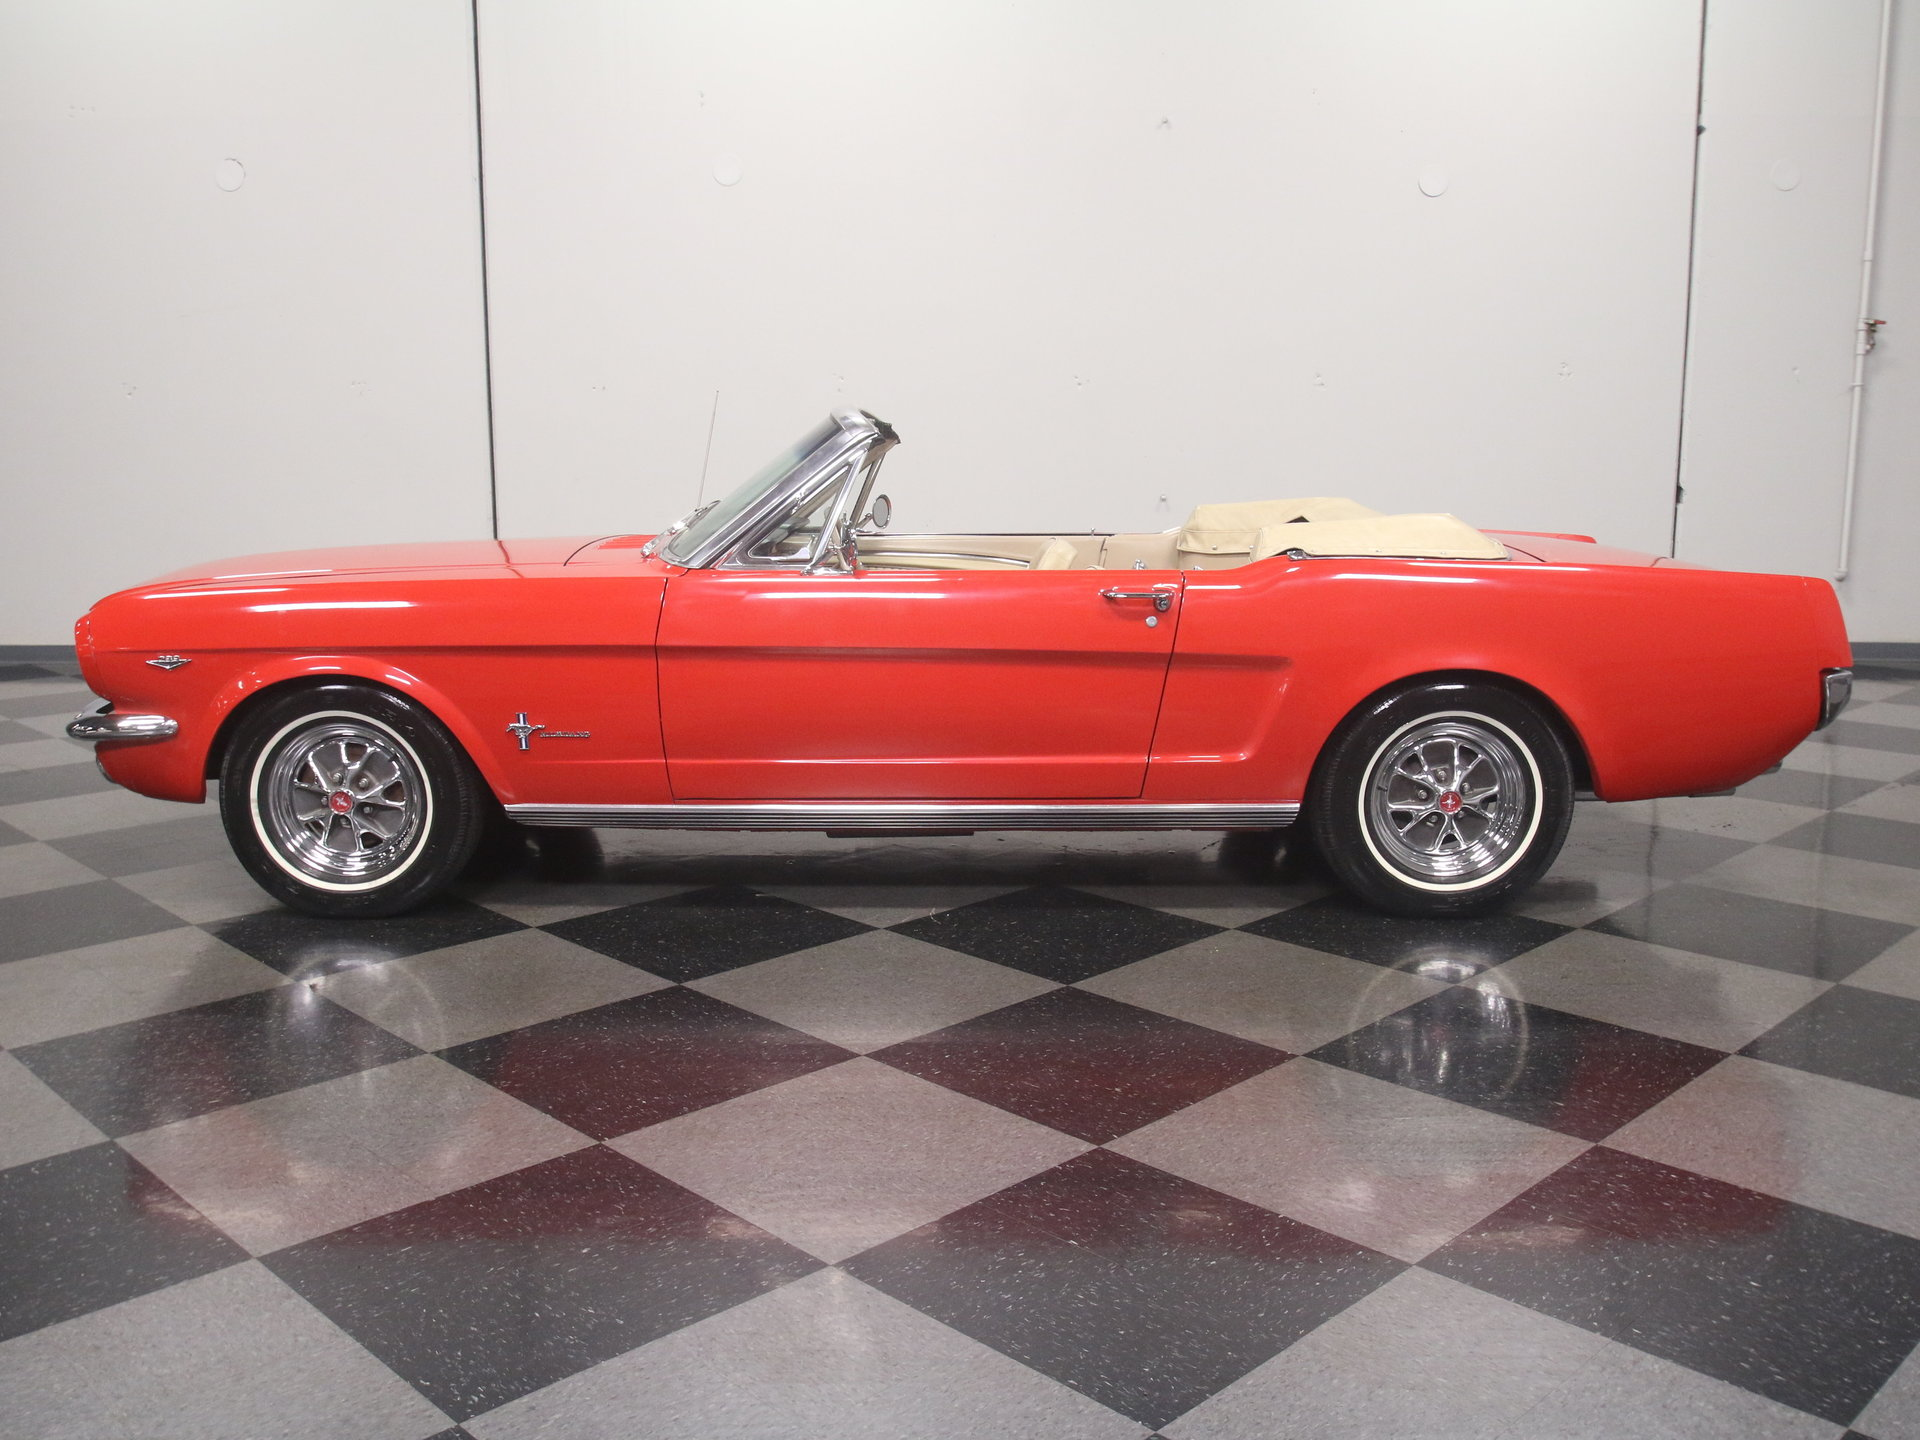 1965 Ford Mustang Convertible: FRESH A-CODE DROPTOP, 289 V8, POWER STEERING, NICELY RESTORED, READY TO CRUISE!!